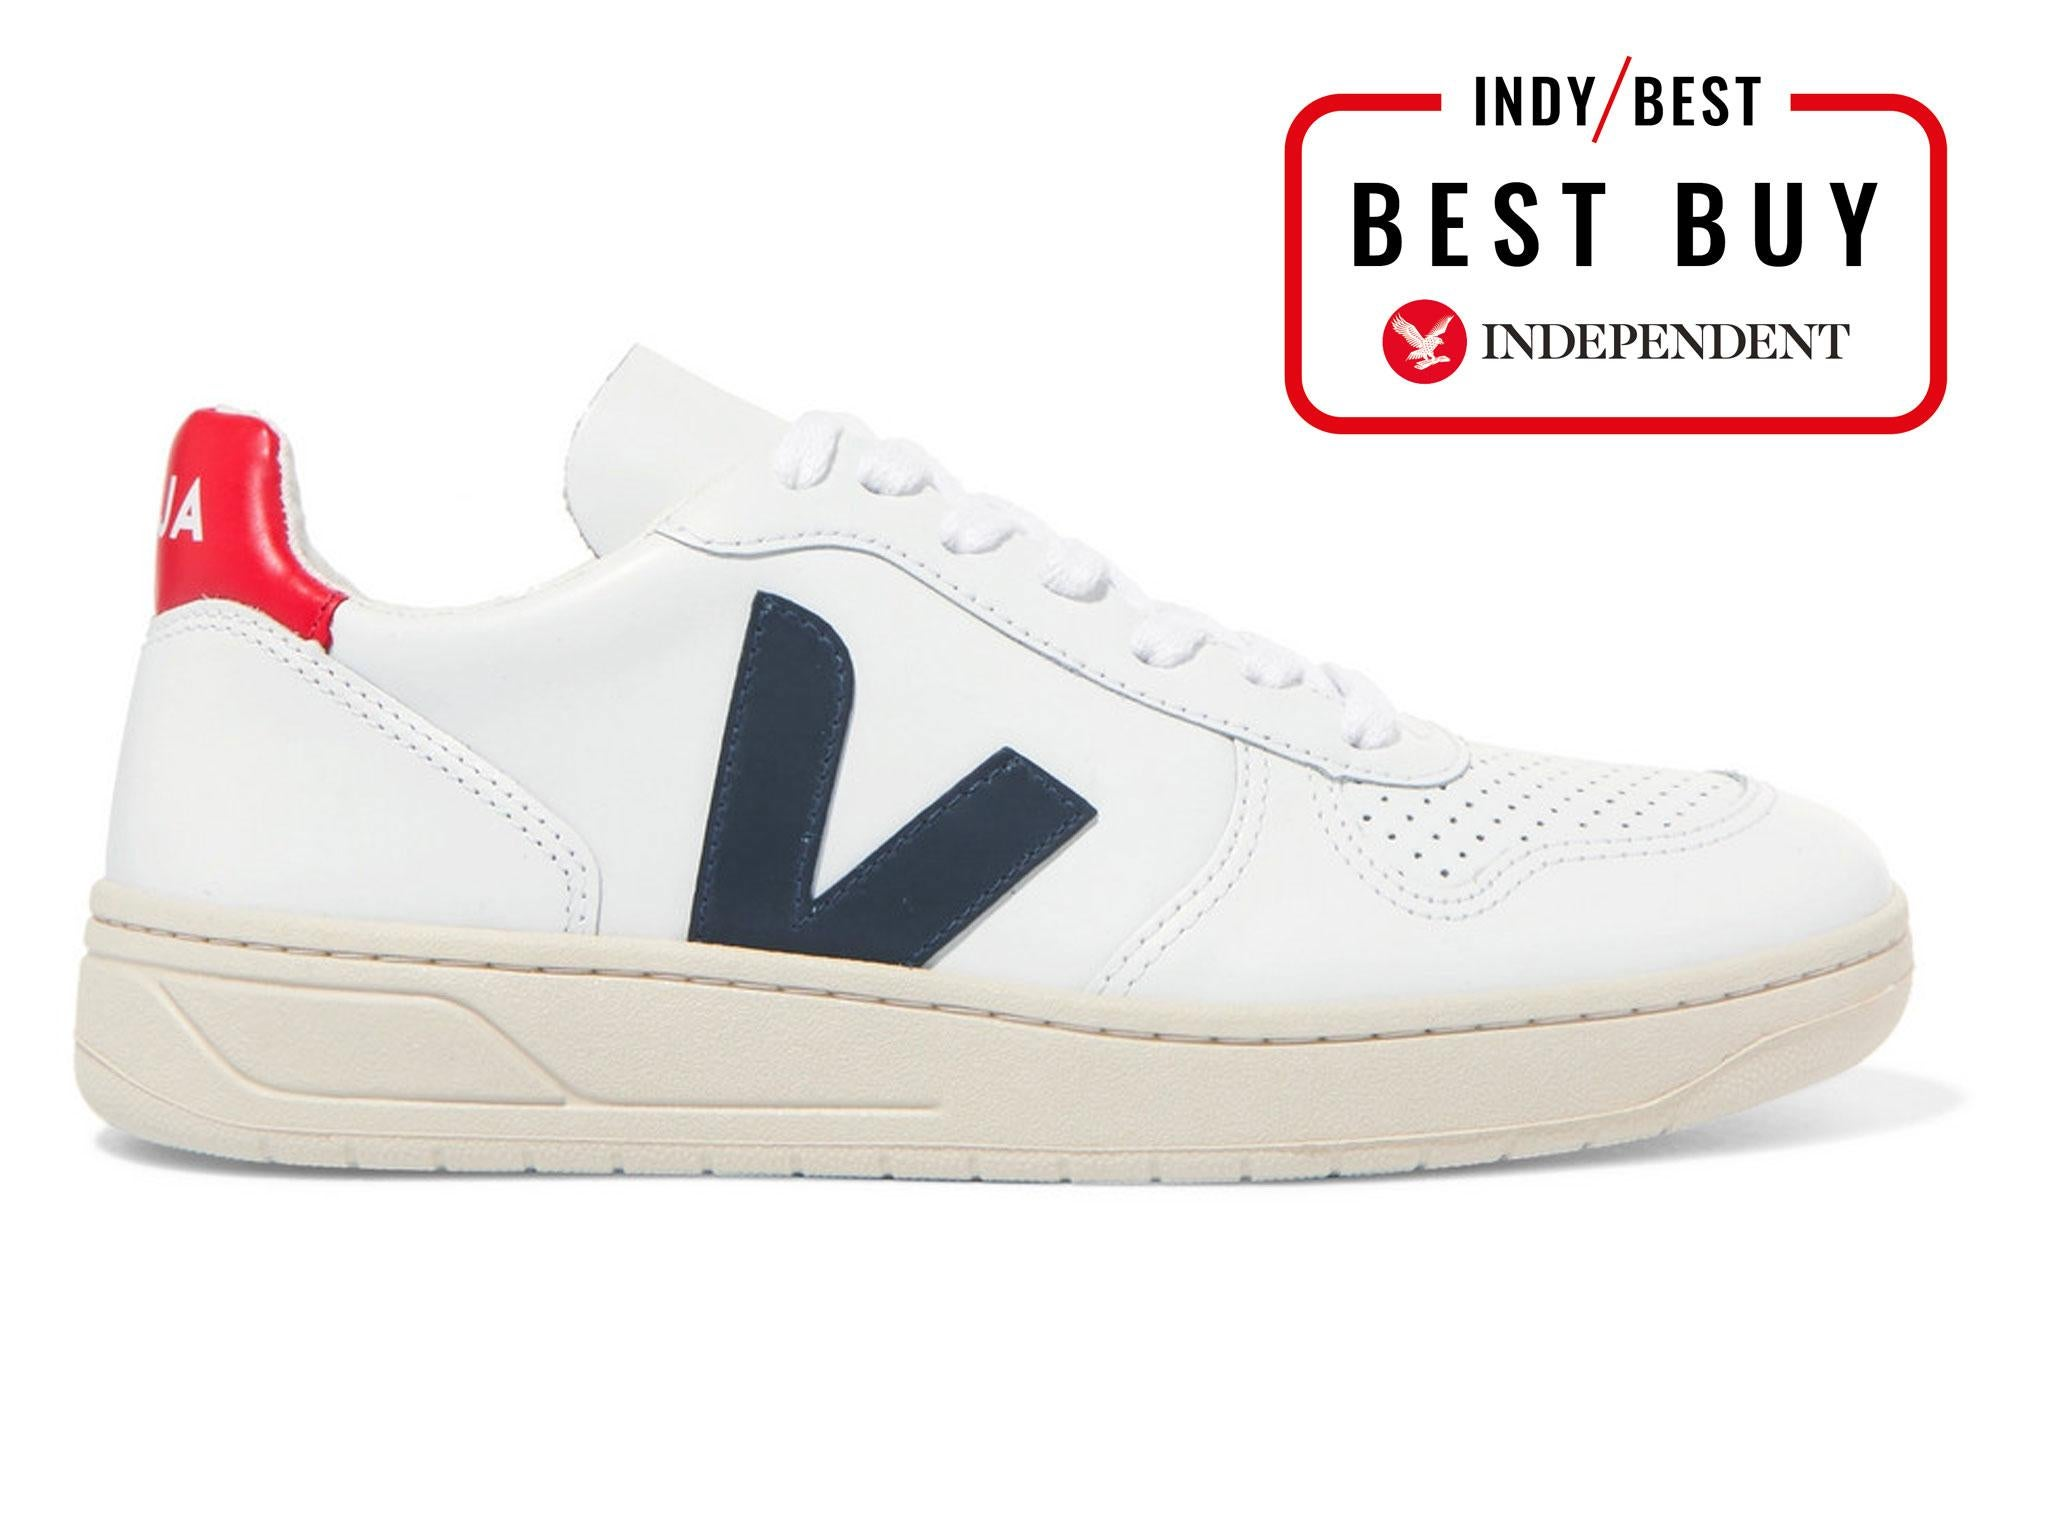 sale retailer 8b5cf ee2de Then look no further than sustainable brand Veja – the ethically and  ecologically grounded sneaker maker that offers a lesson in how sustainable  ...